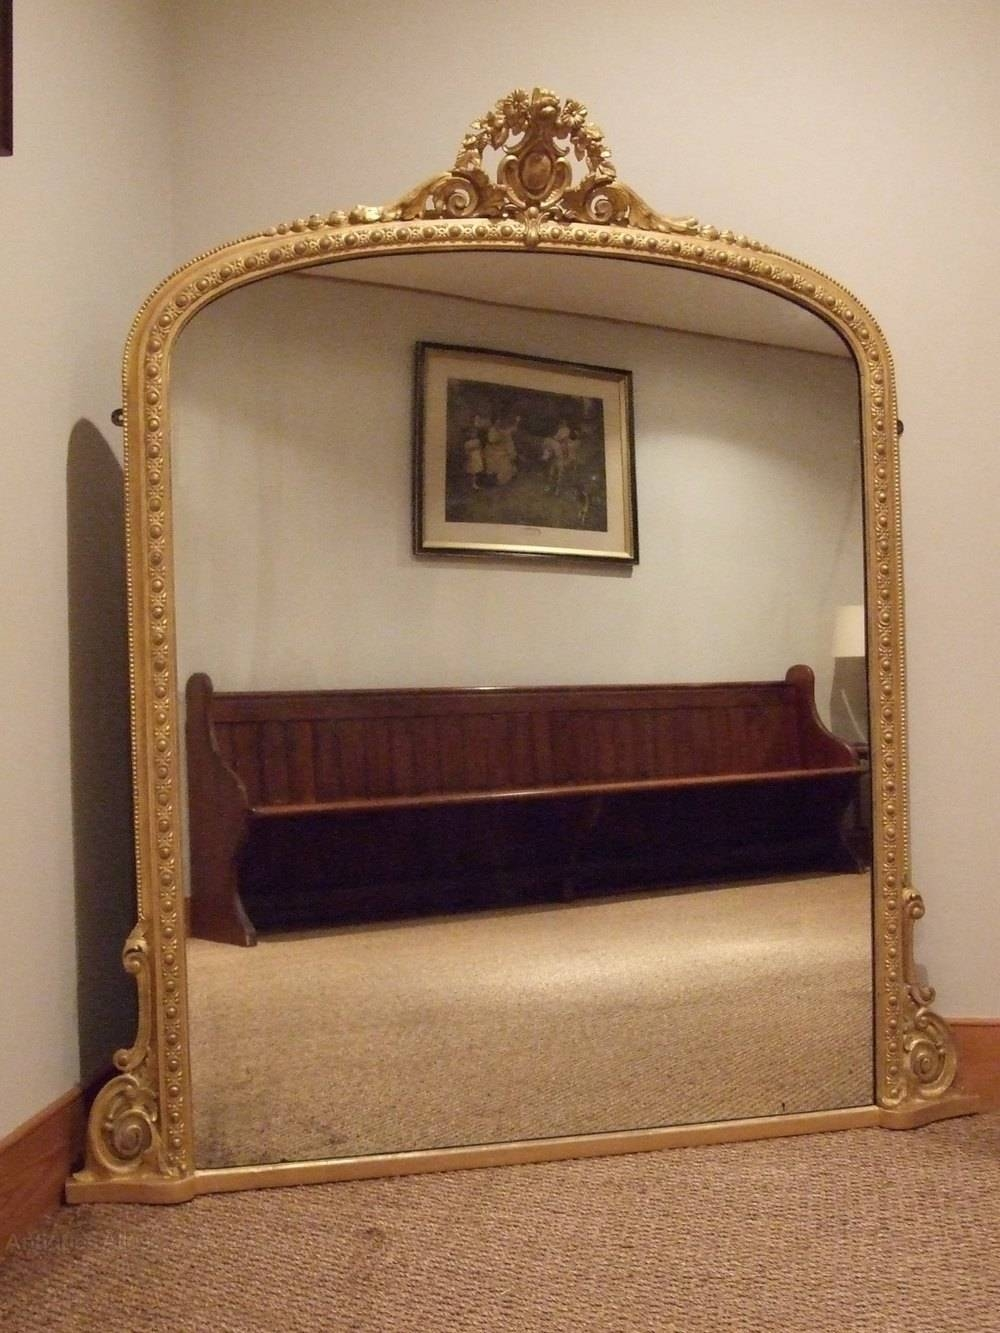 Antiques Atlas - Large Antique Gilt Wood Overmantle Mirror C1880 with regard to Antique Overmantle Mirrors (Image 5 of 15)